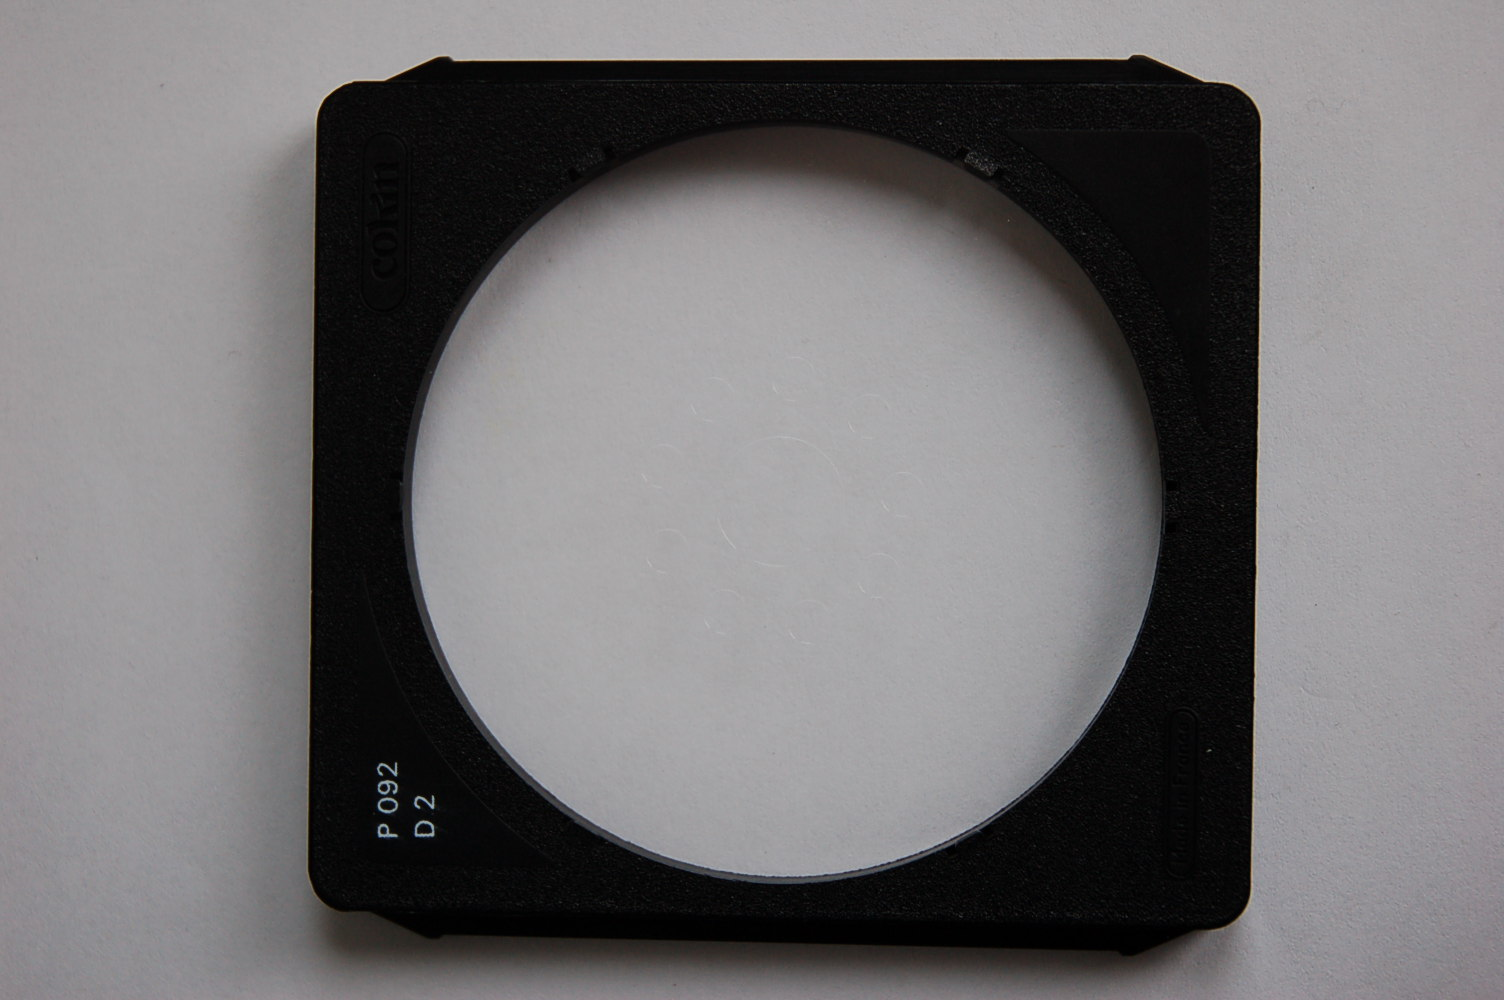 Cokin P092 Filter Traumfilter 2